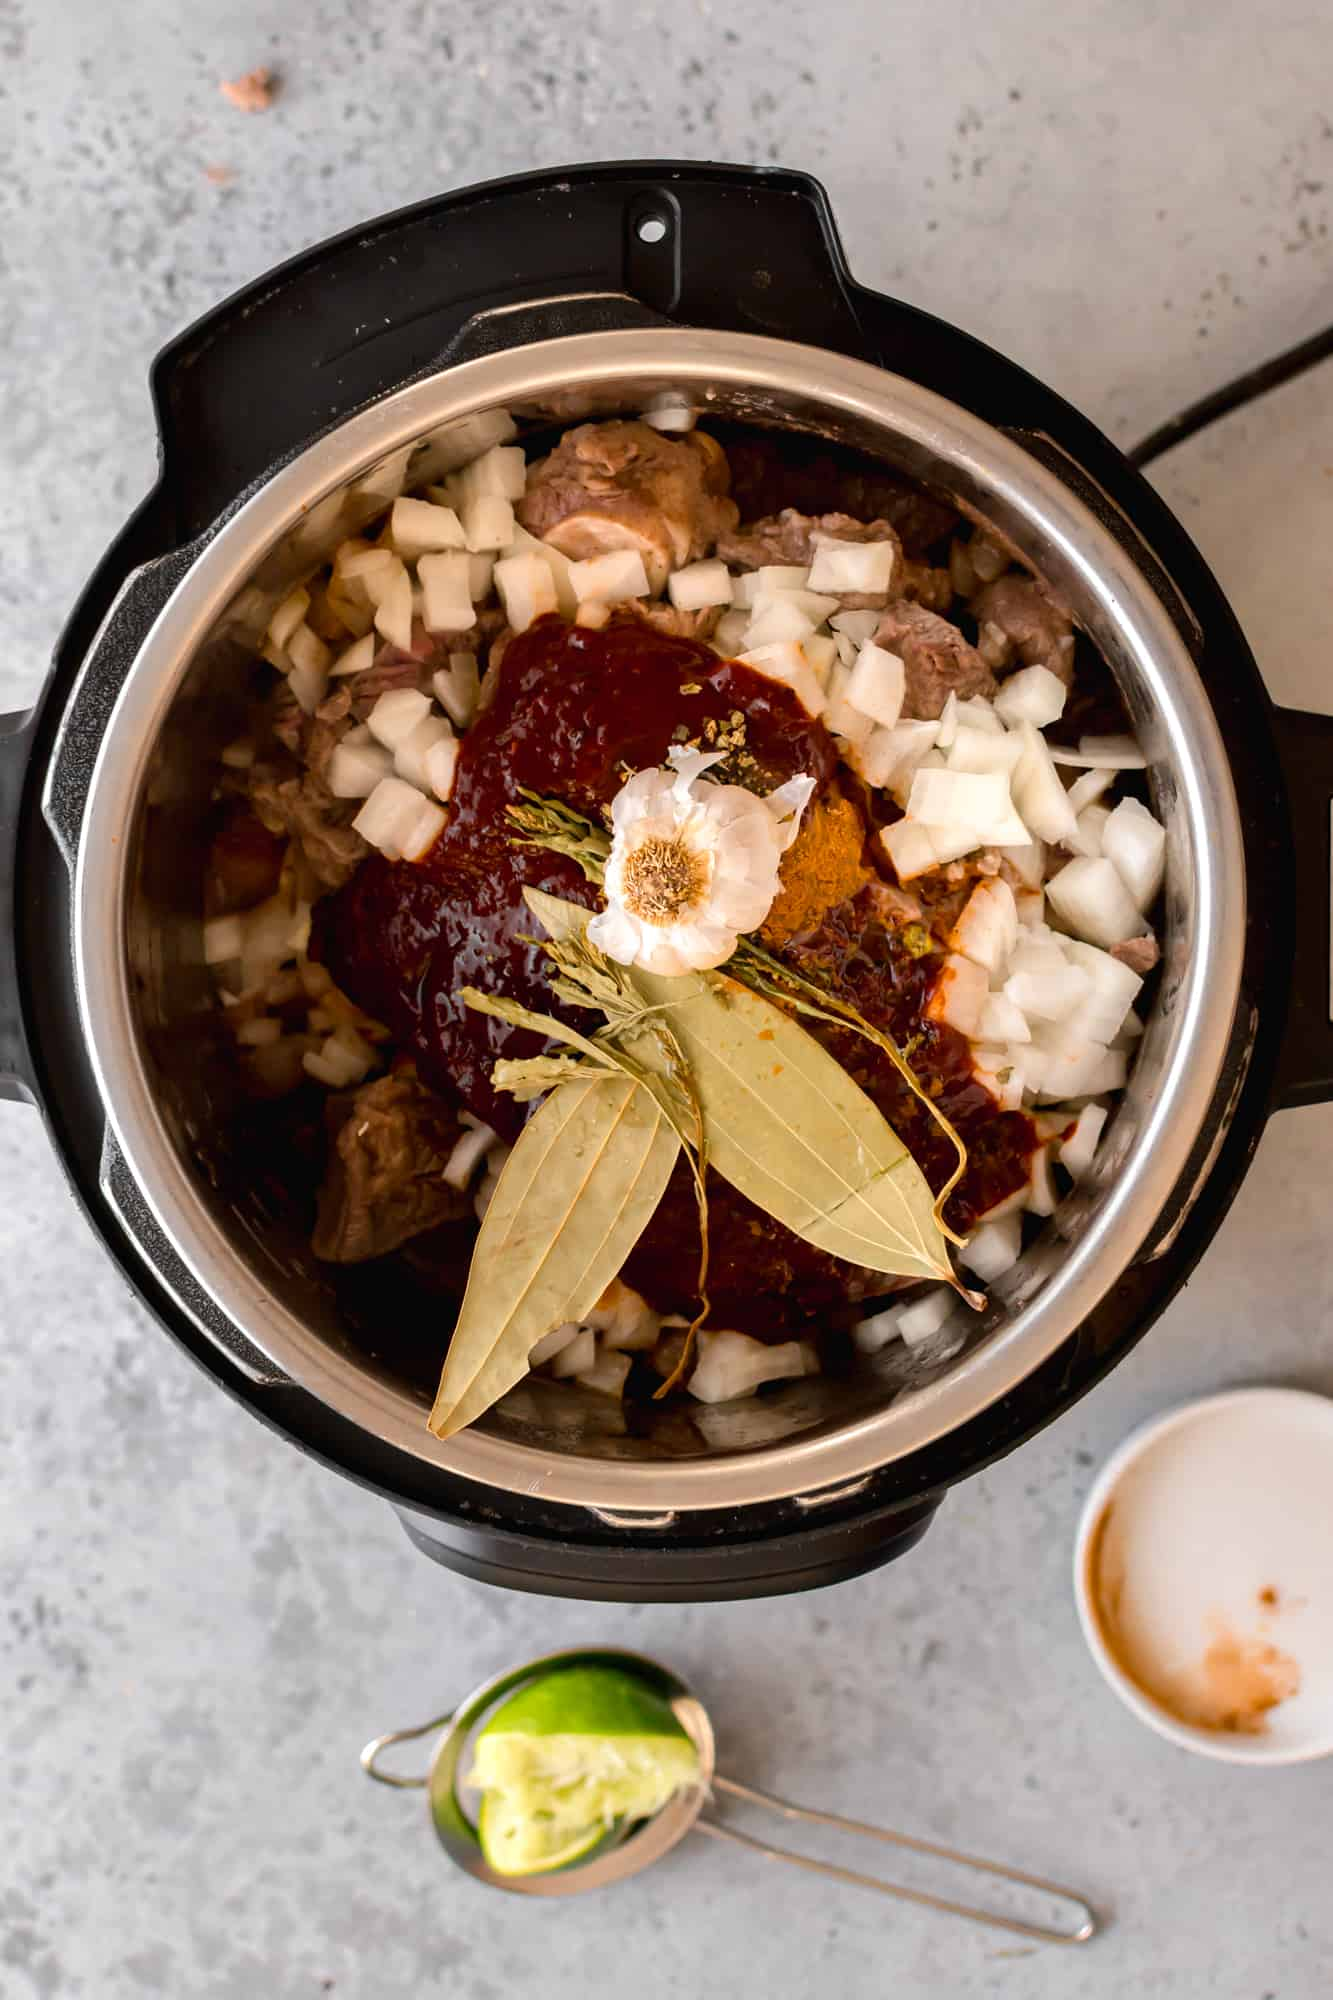 Garlic and beer added to the instant pot.